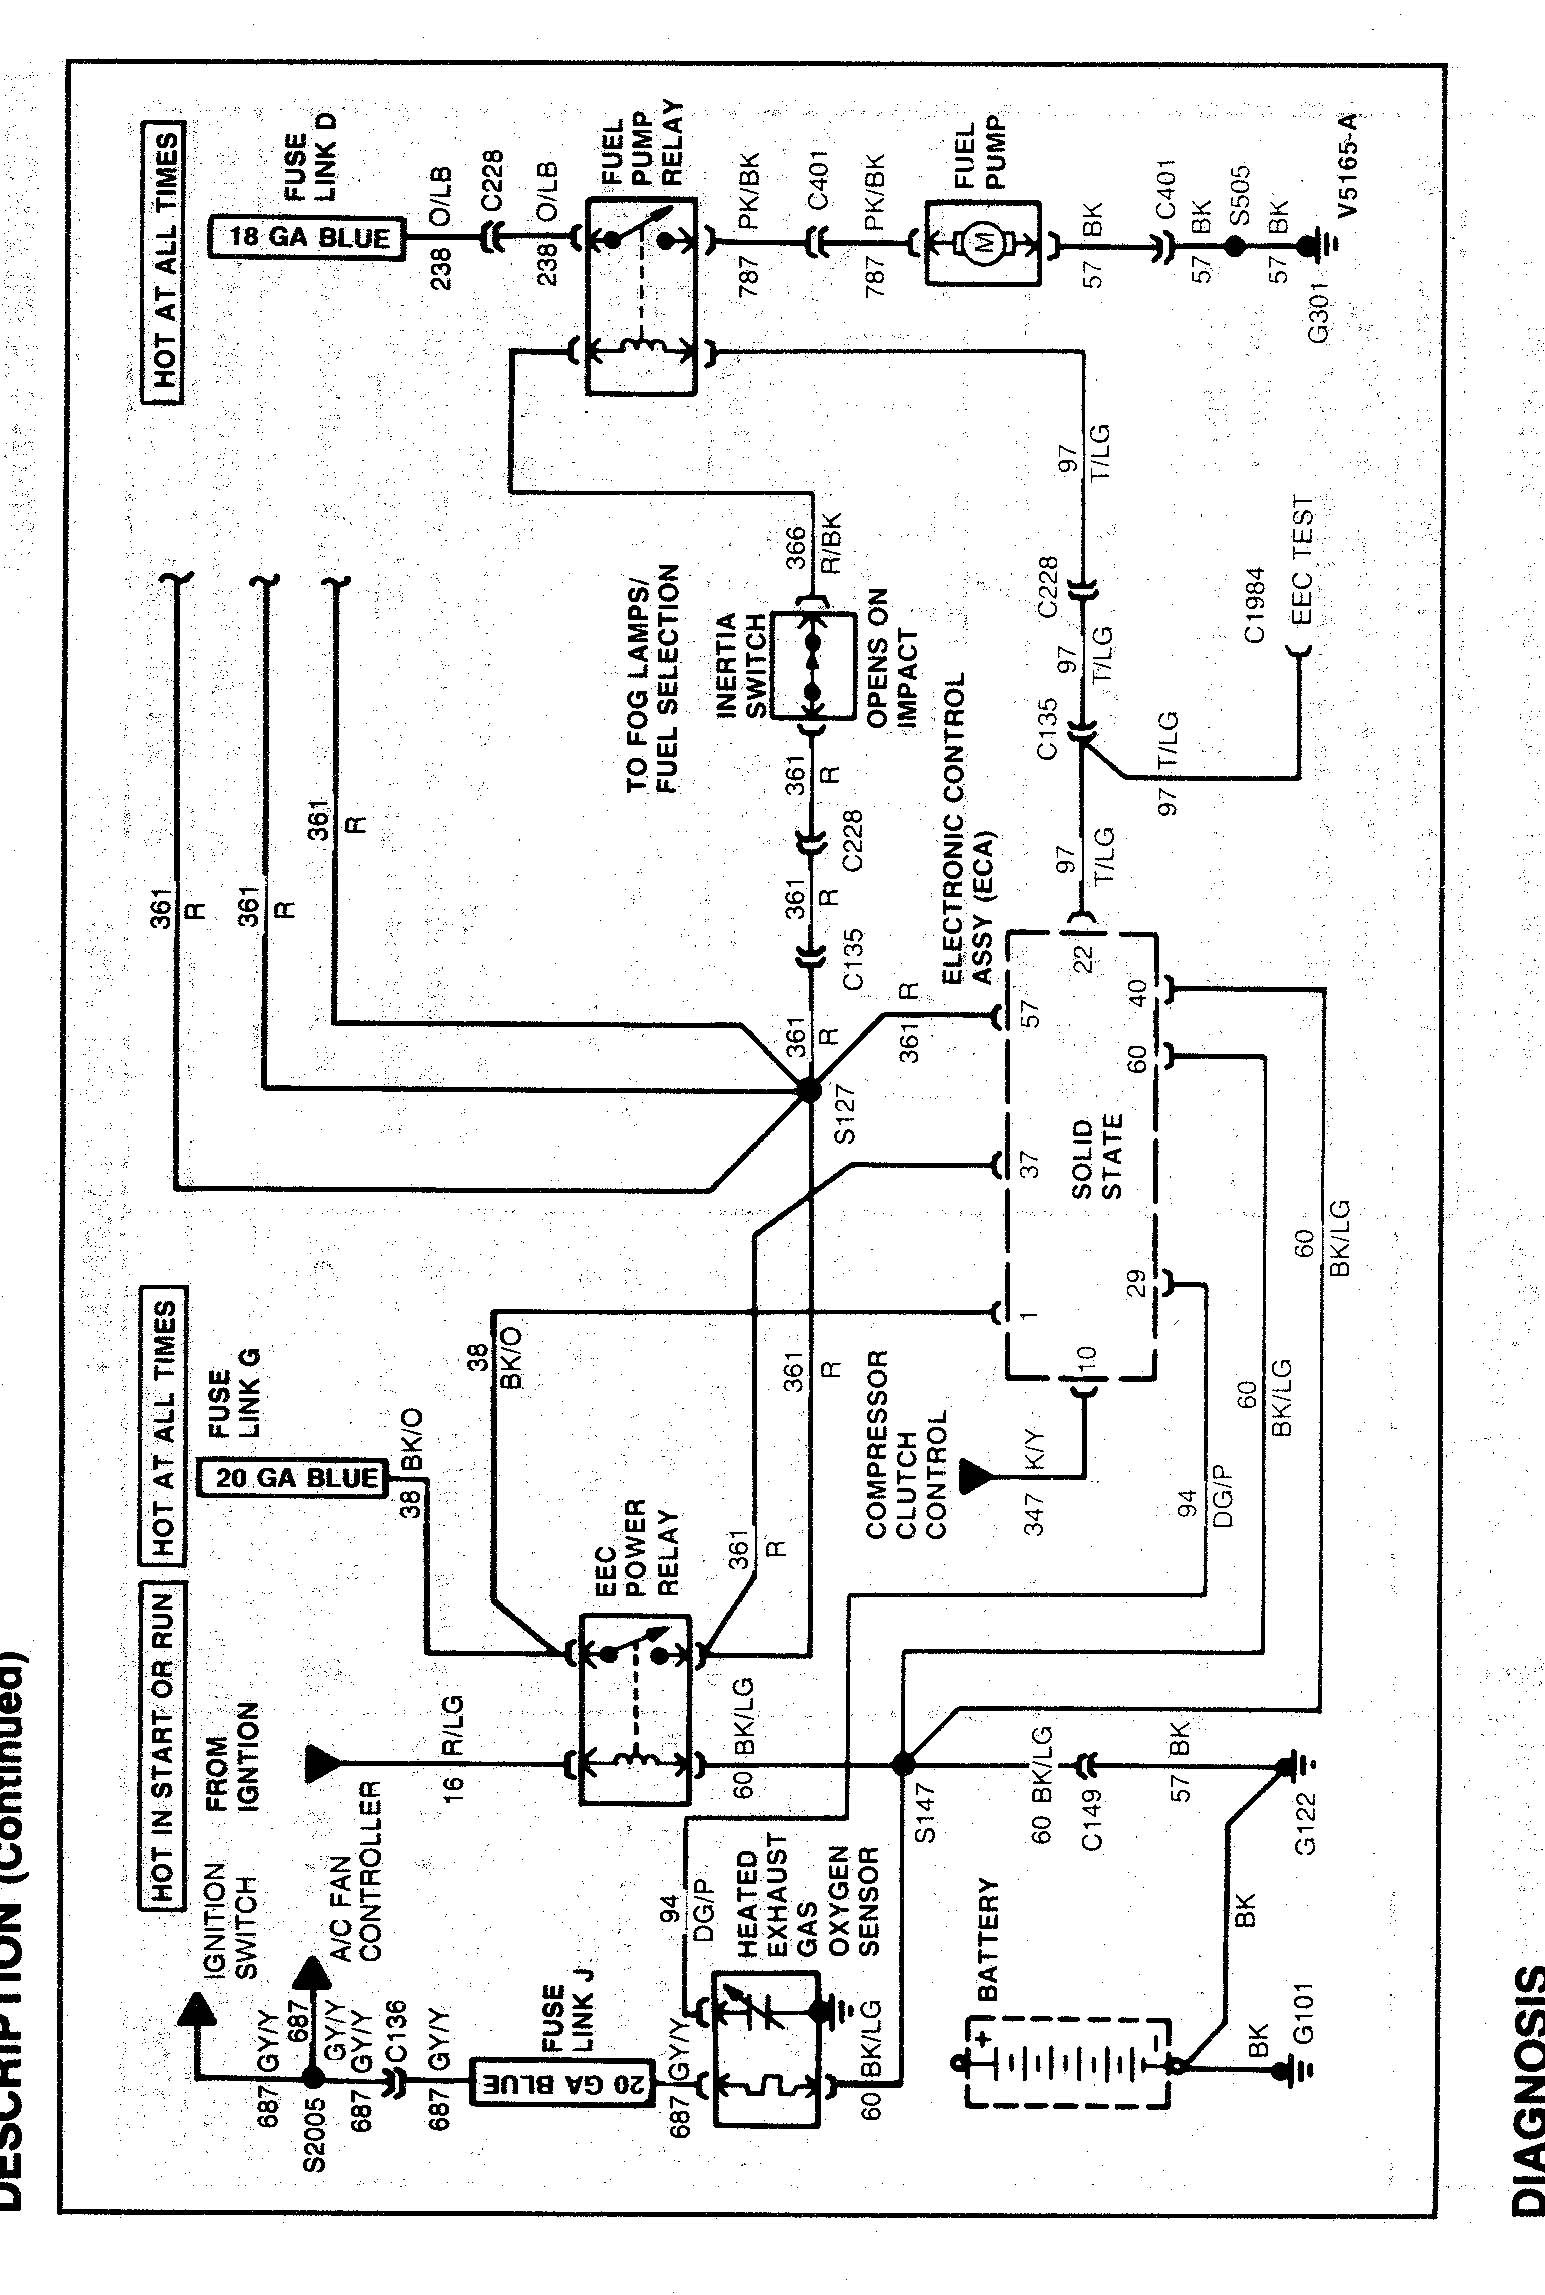 1928d1051592166 may electrical fuel pump but im not sure mustangfuelelectricaldiagram2 1997 ford explorer 5 0 wiring diagram wirdig readingrat net 2000 ford mustang gt fuel pump wiring diagram at edmiracle.co